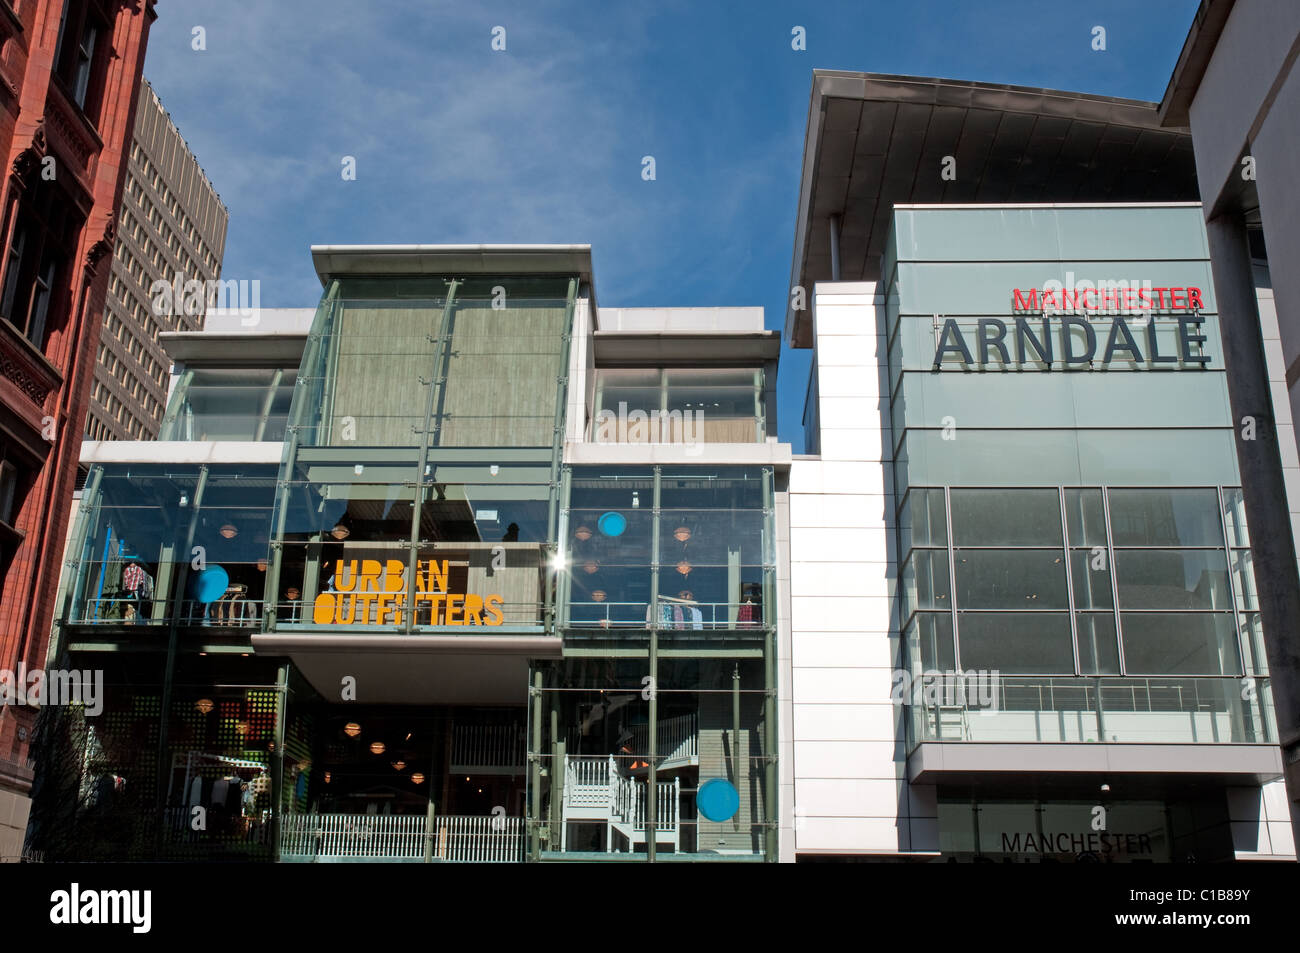 Shopping Manchester, one of the entrances to Manchester Arndale, the UKs largest inner city shopping centre. - Stock Image